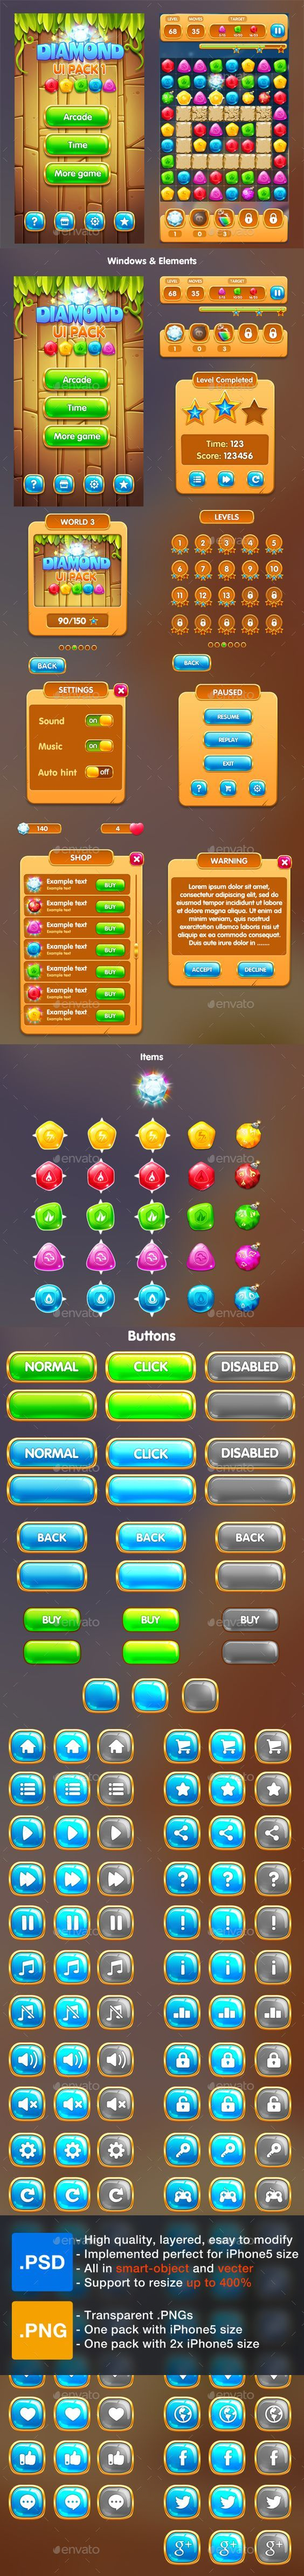 Cartoon Game UI Pack 1 #cartoon #button • Download ➝ https://graphicriver.net/item/cartoon-game-ui-pack-1/17753069?ref=pxcr: